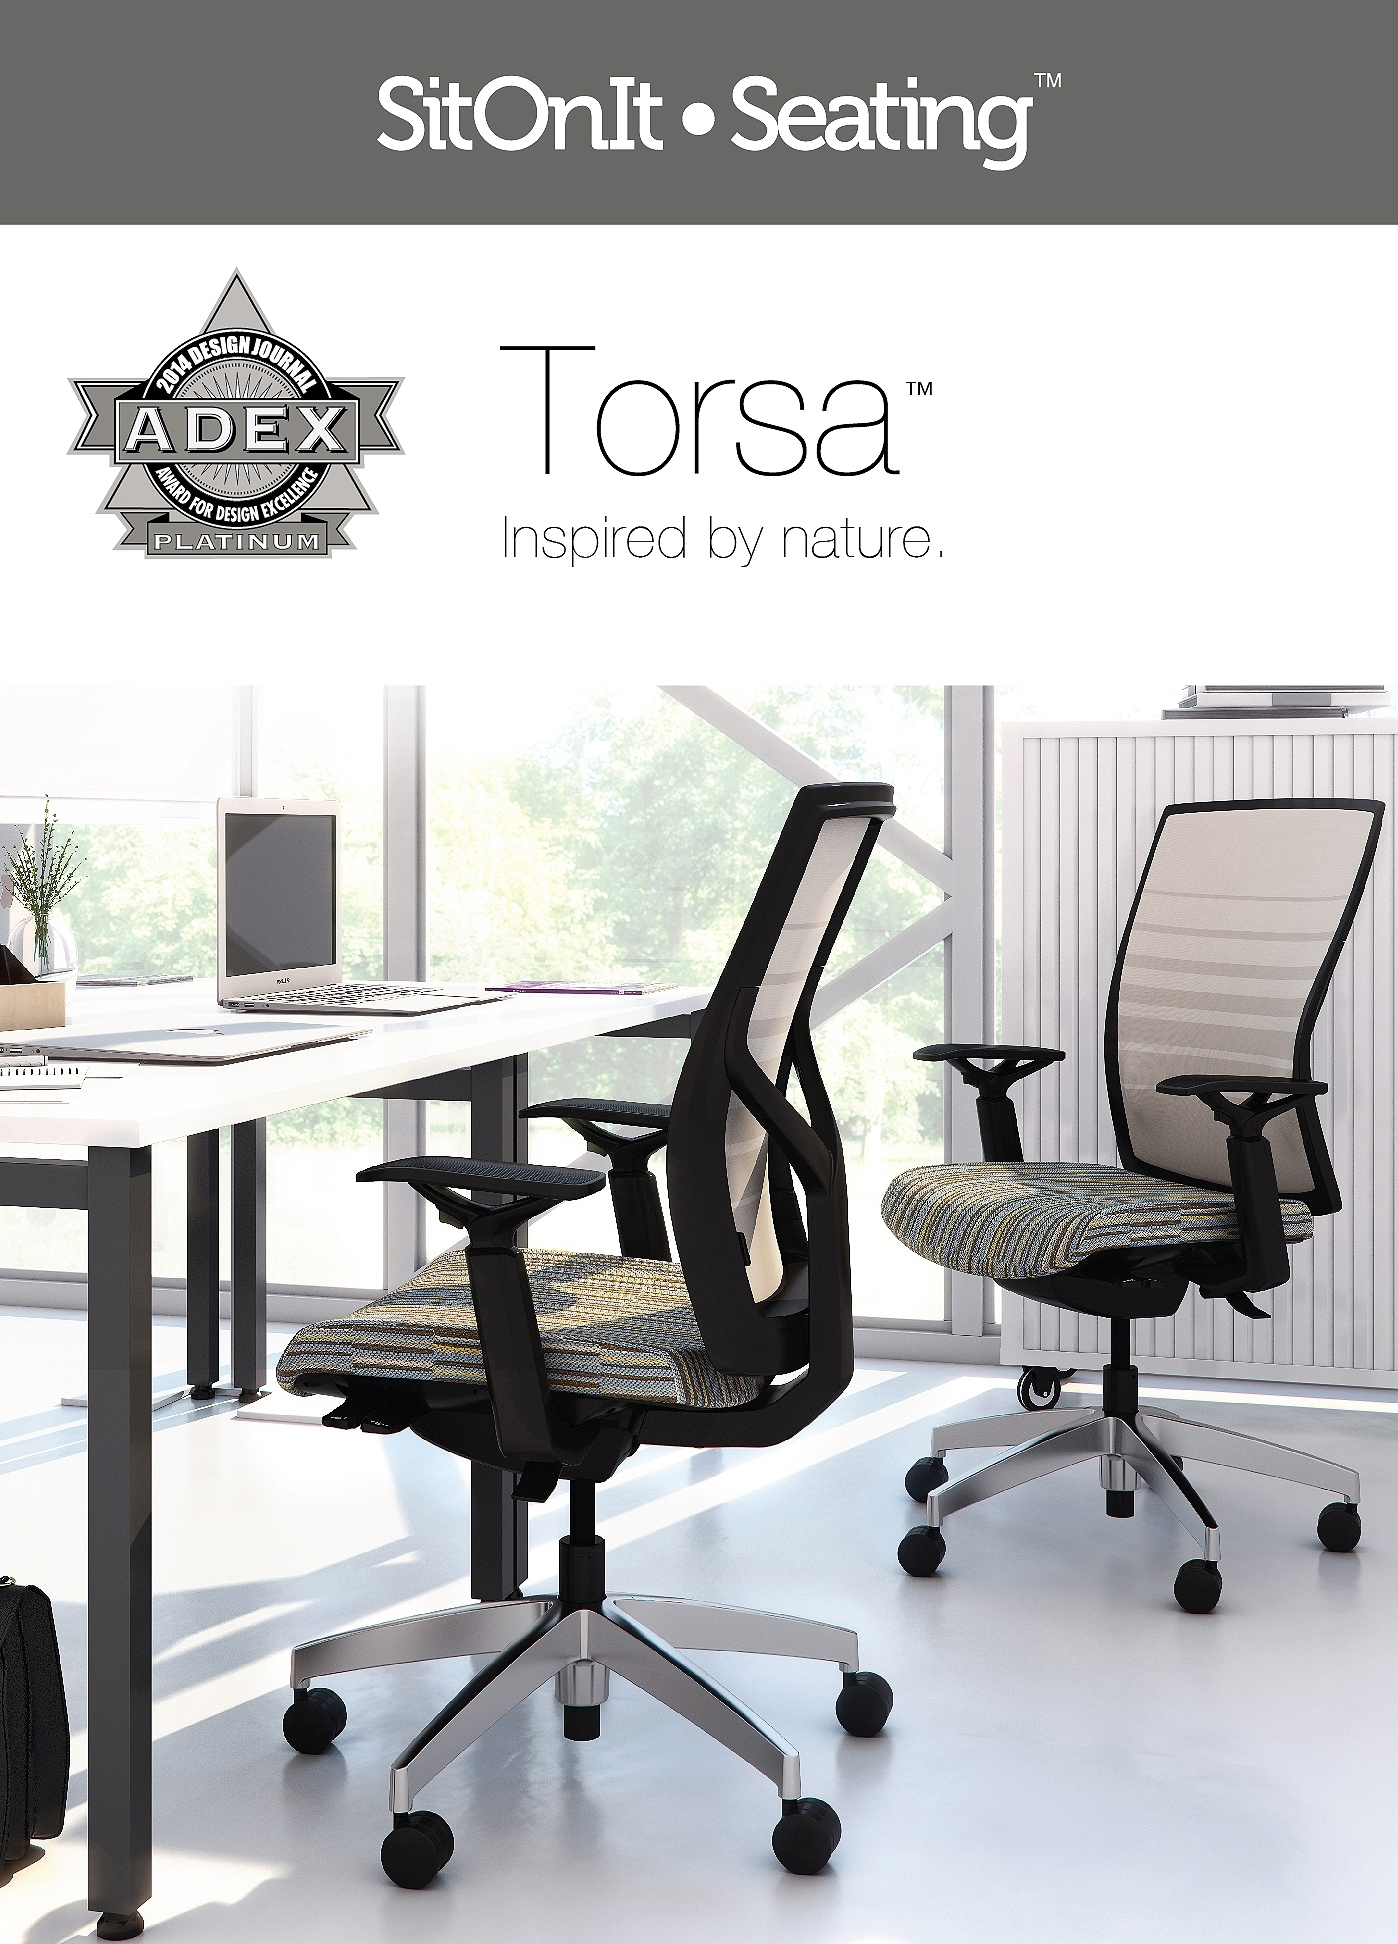 Sit It Seating Garners Three 2014 Awards for Design Excellence